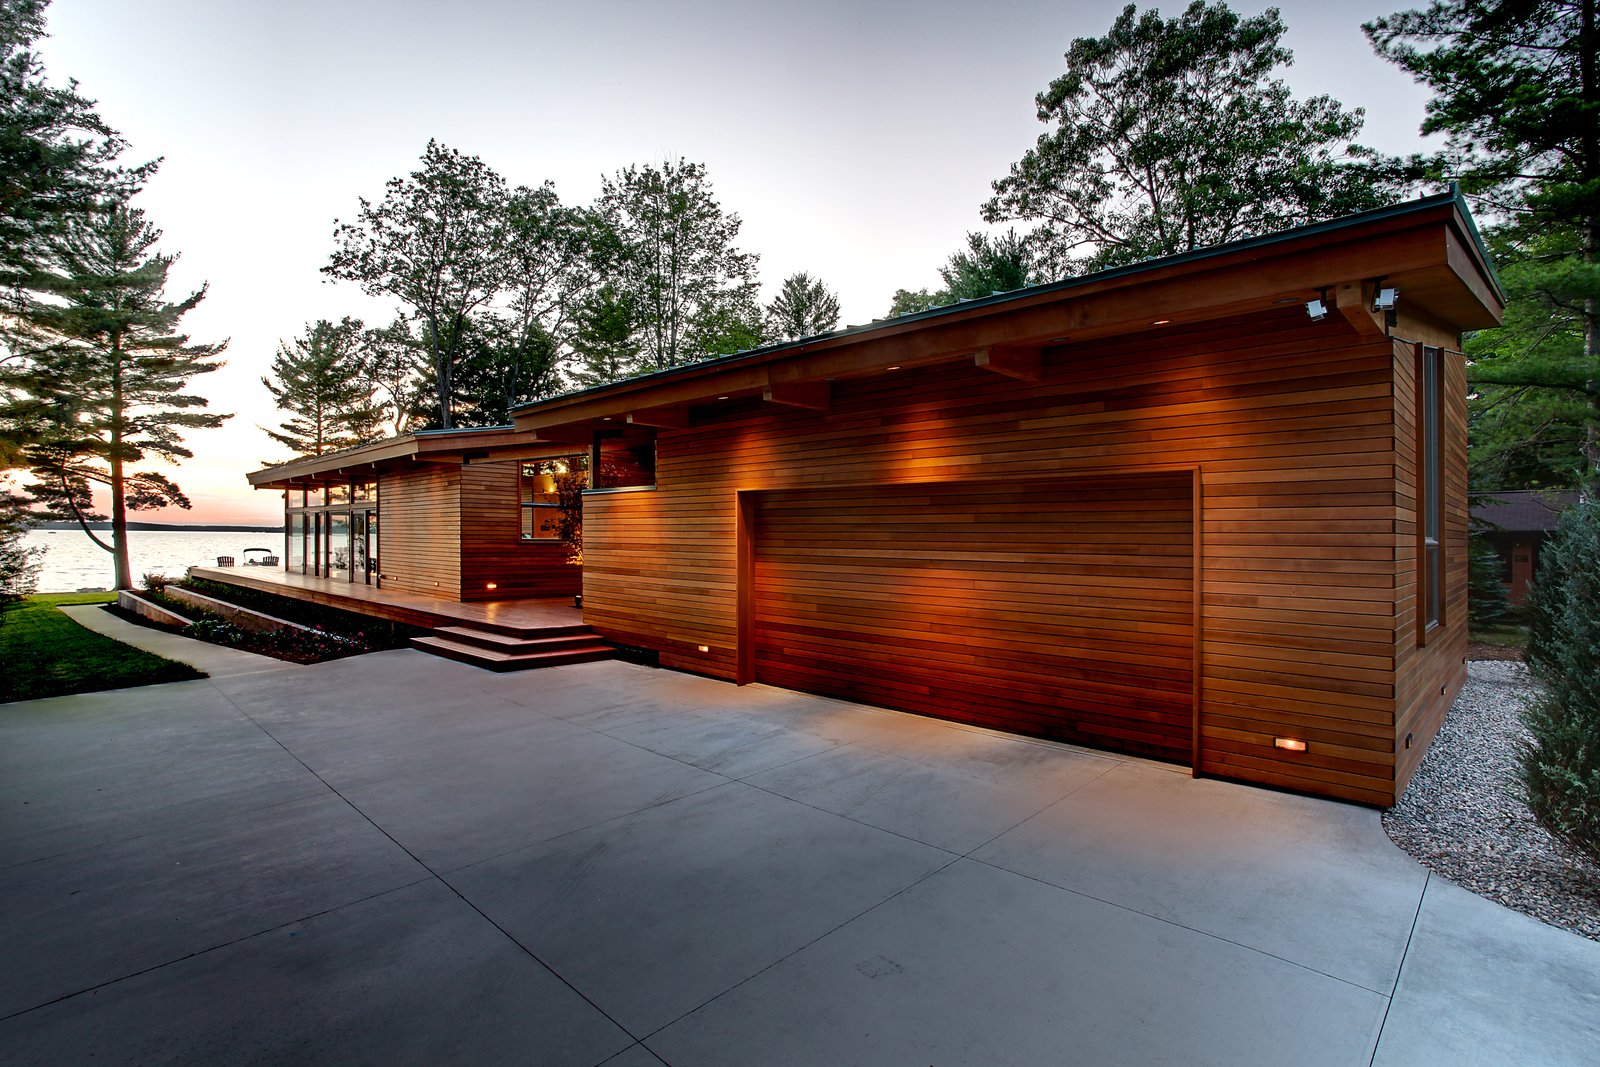 Full south side facade with cedar clad garage door  Higgins Lake House by Jeff Jordan Architects